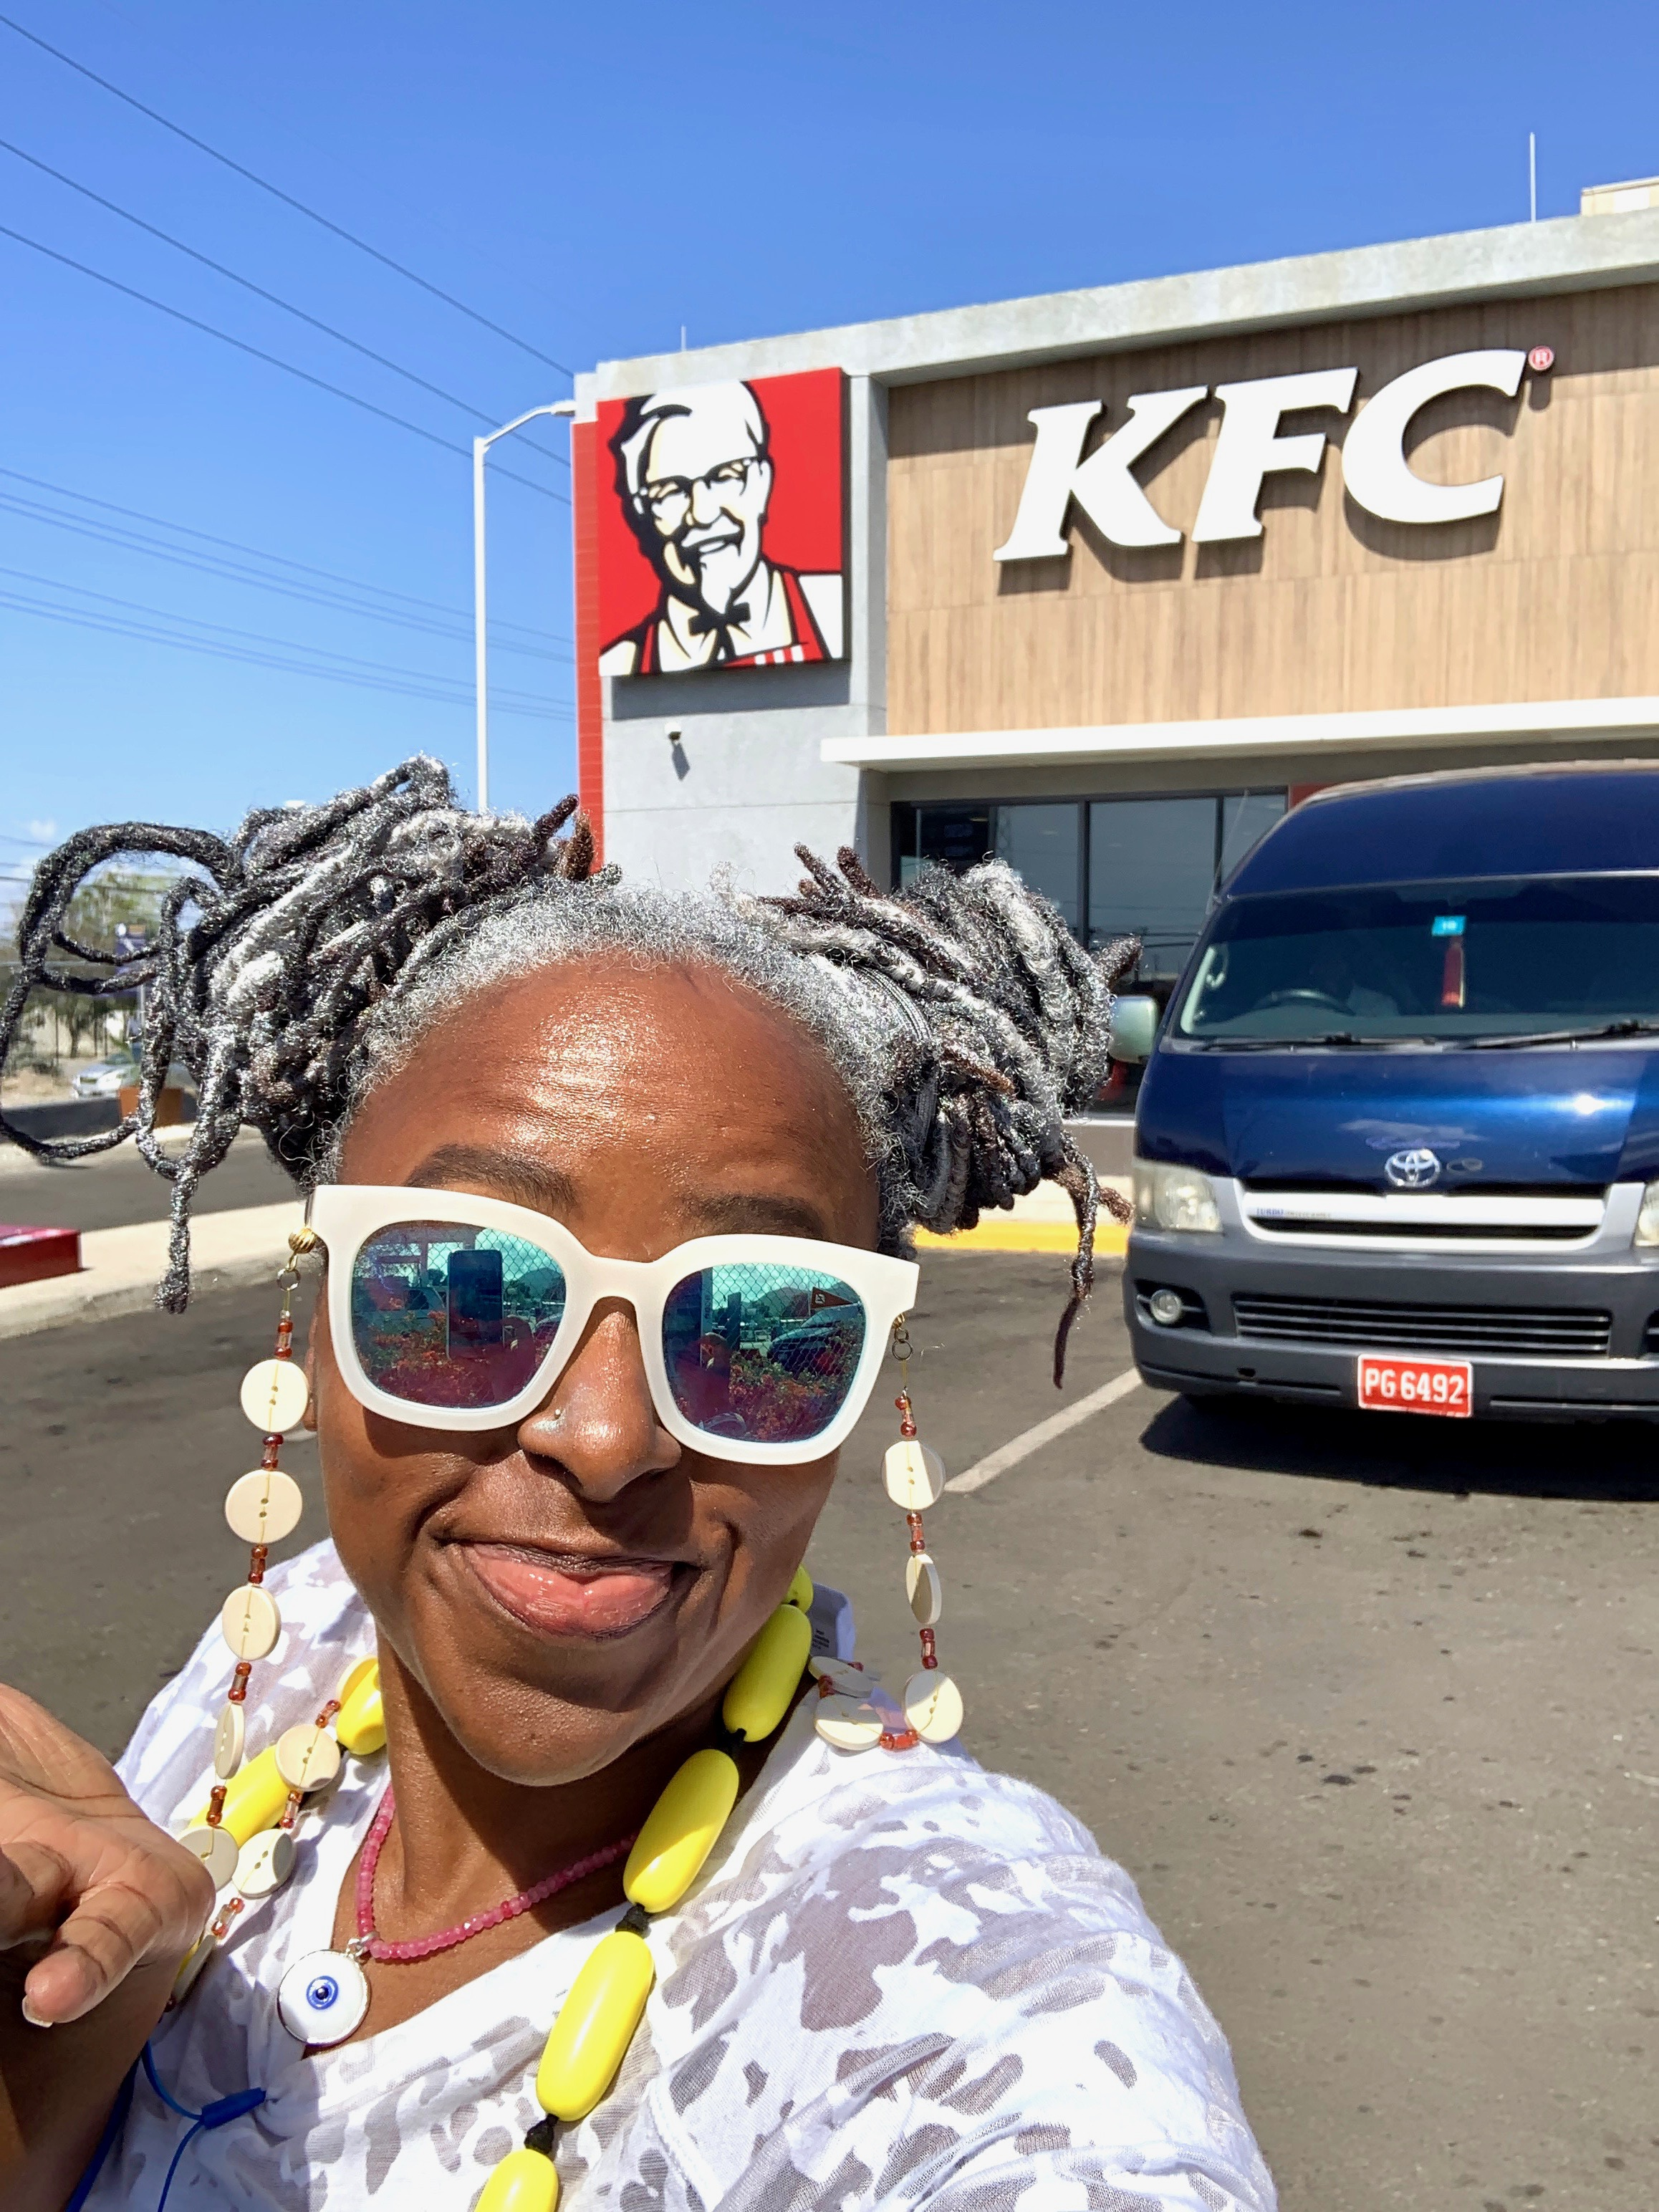 There's no way I was leaving Kingston without stopping at KFC!